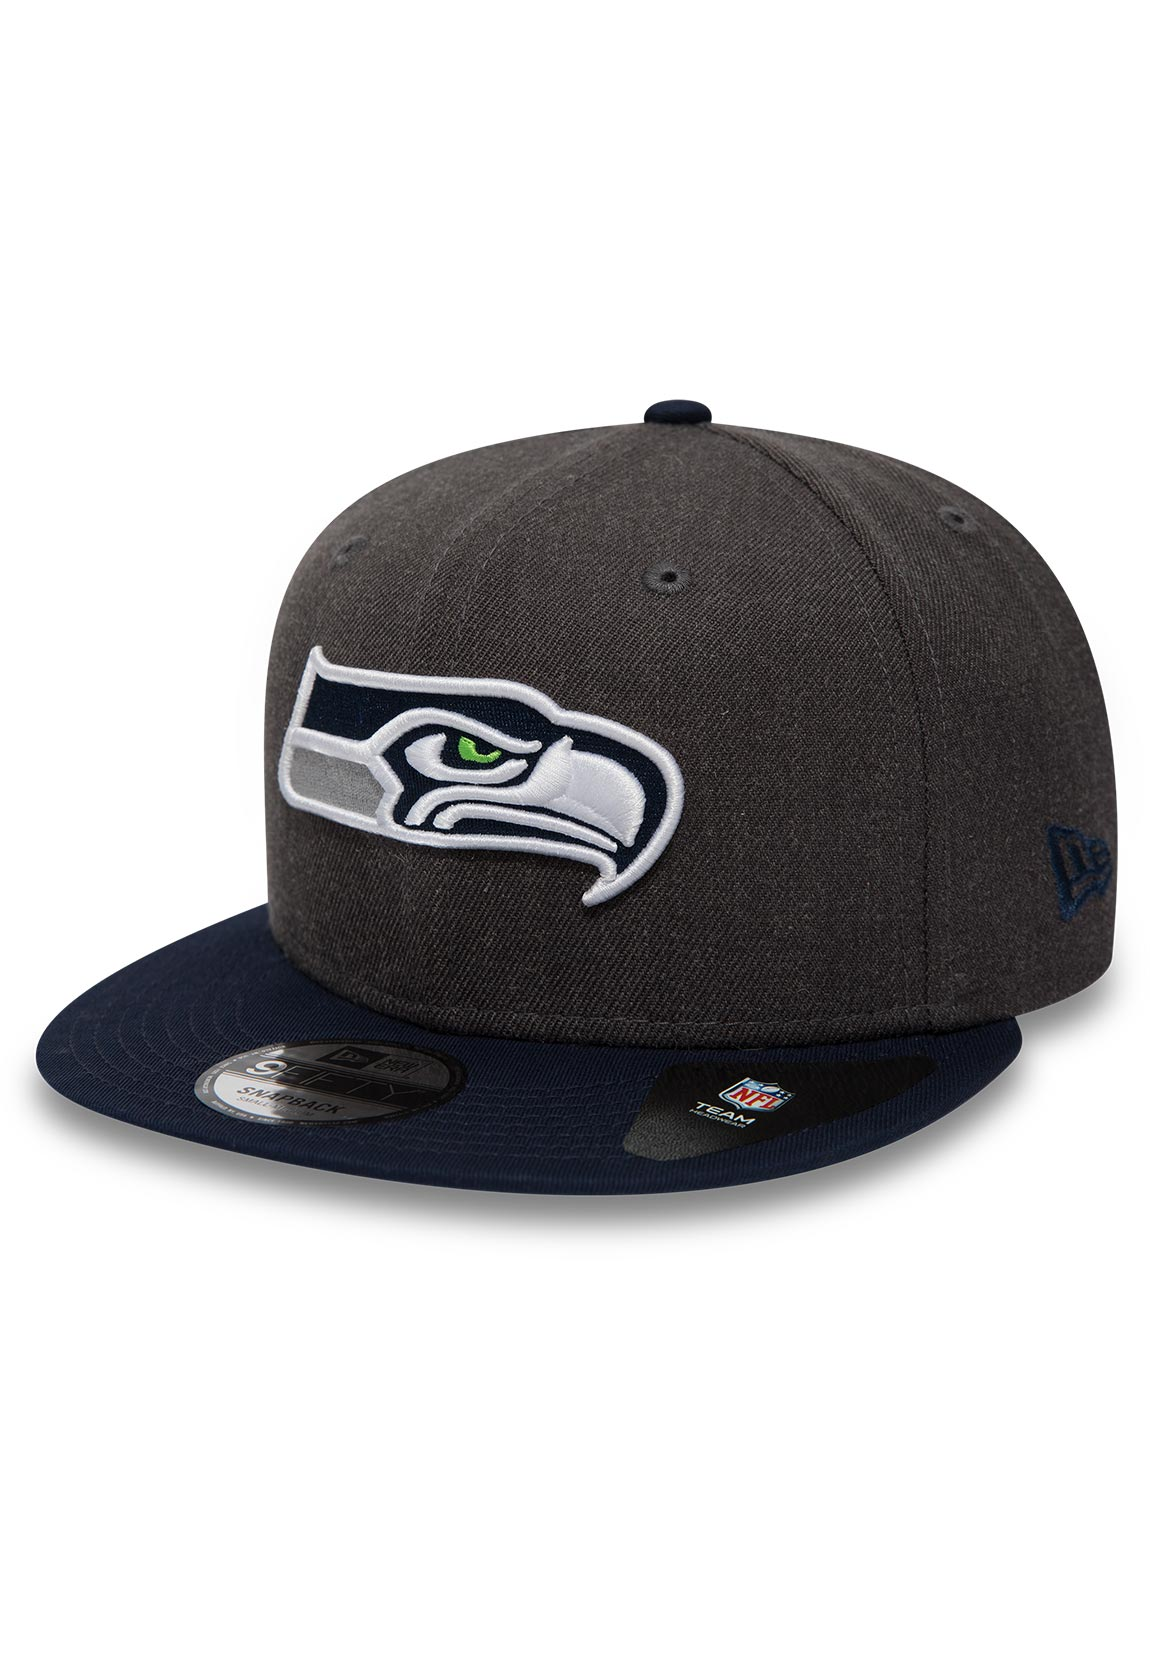 the best attitude a3fb9 1ae19 Details about New Era NFL Heather 9Fifty Snapback Cap Seattle Seahawks Grey